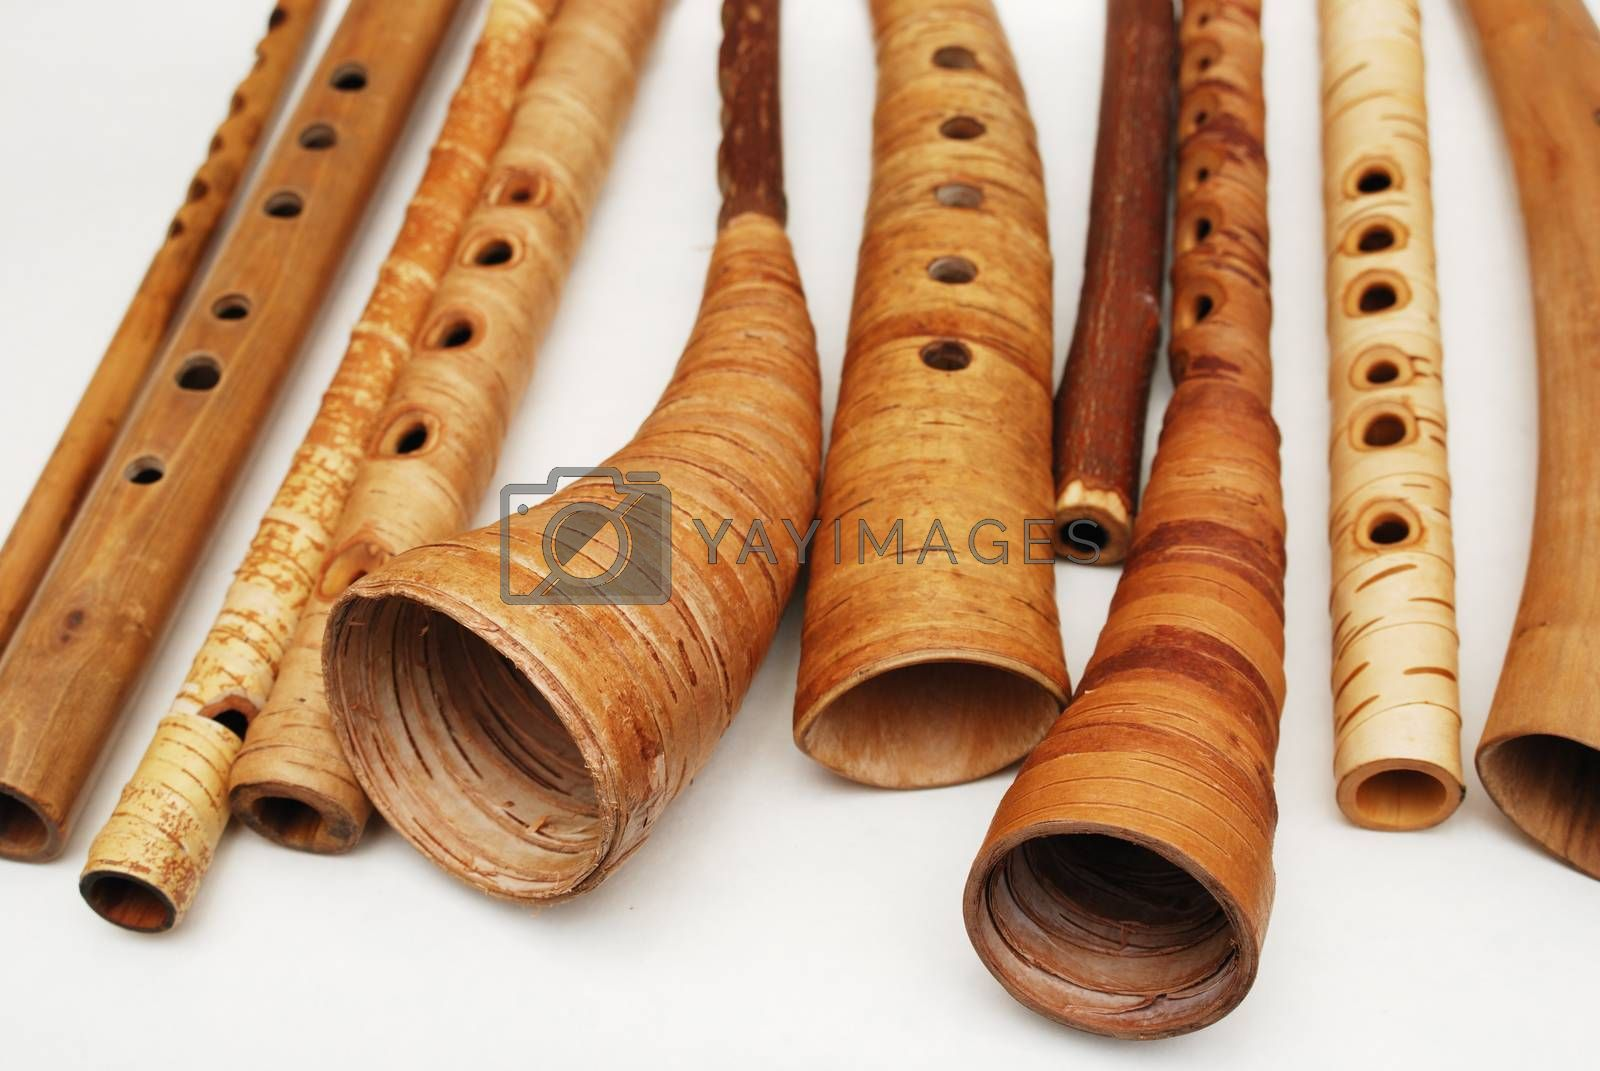 ancient woodwind folk instruments on a white